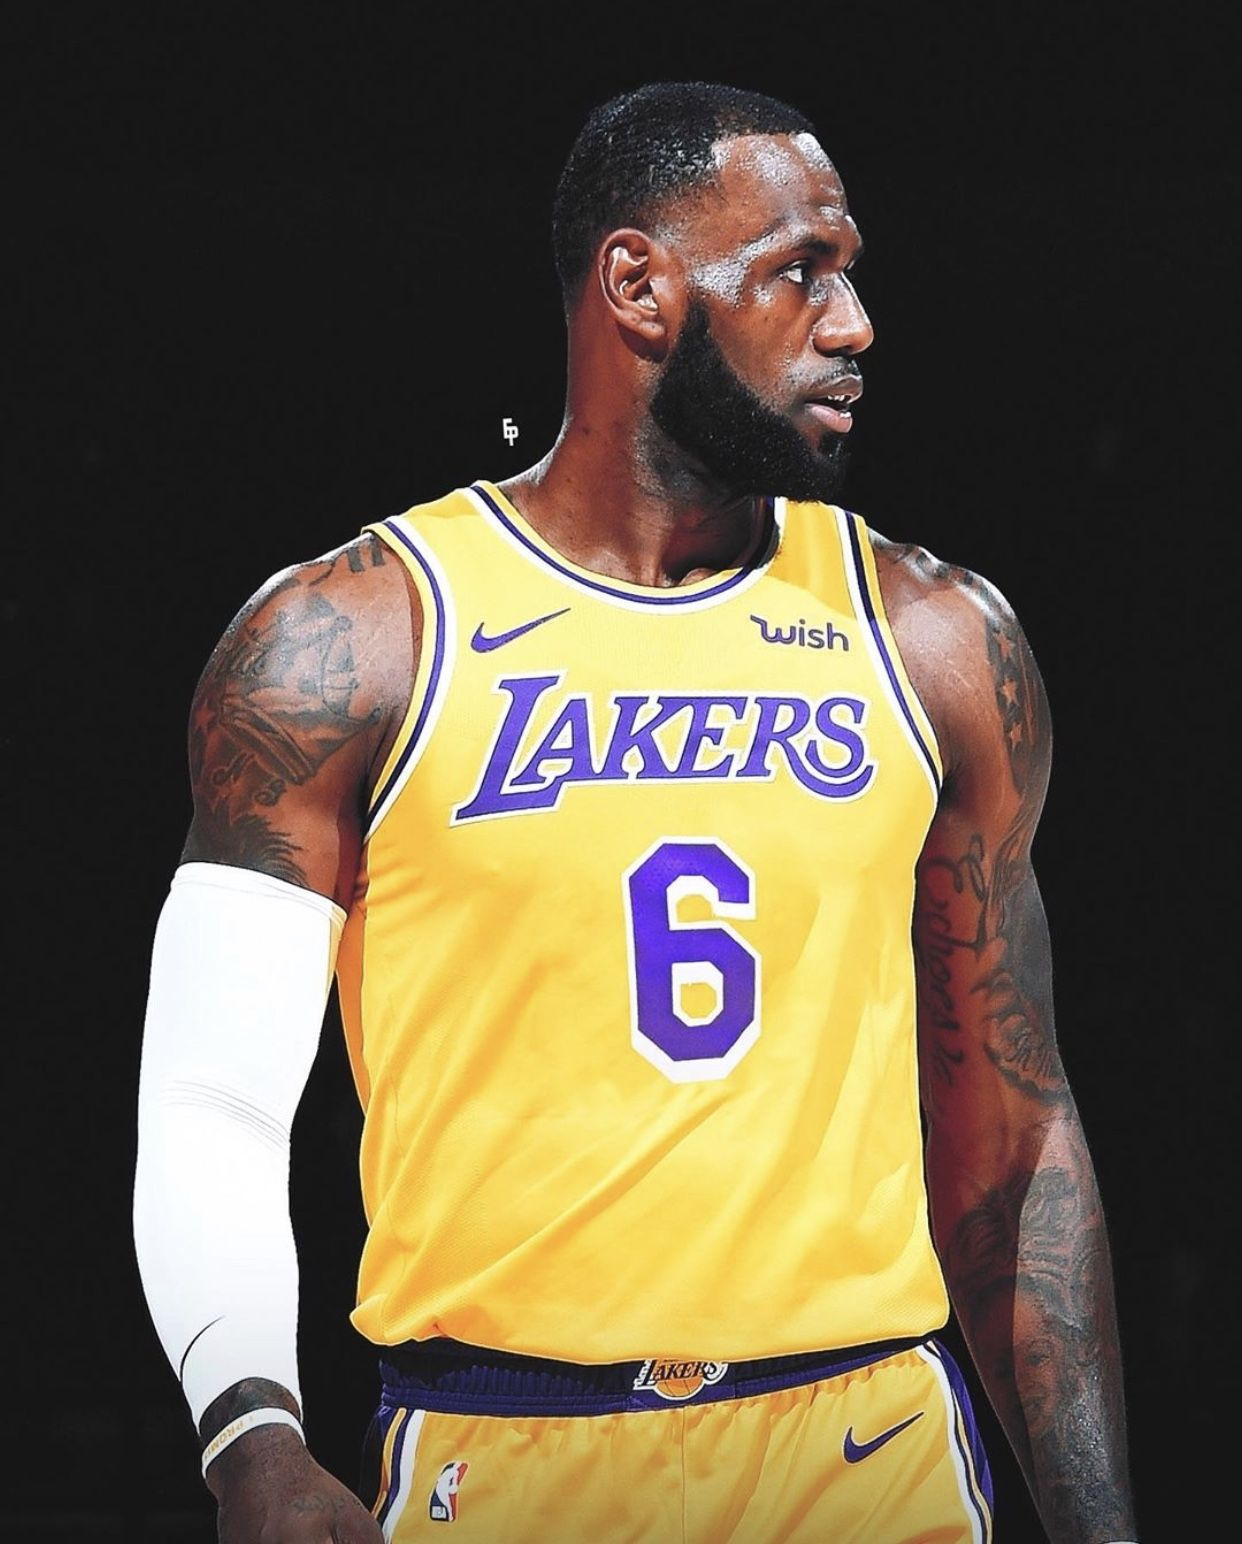 Pin by Dylan Wilson on LeBron James in 2020 Nba lebron